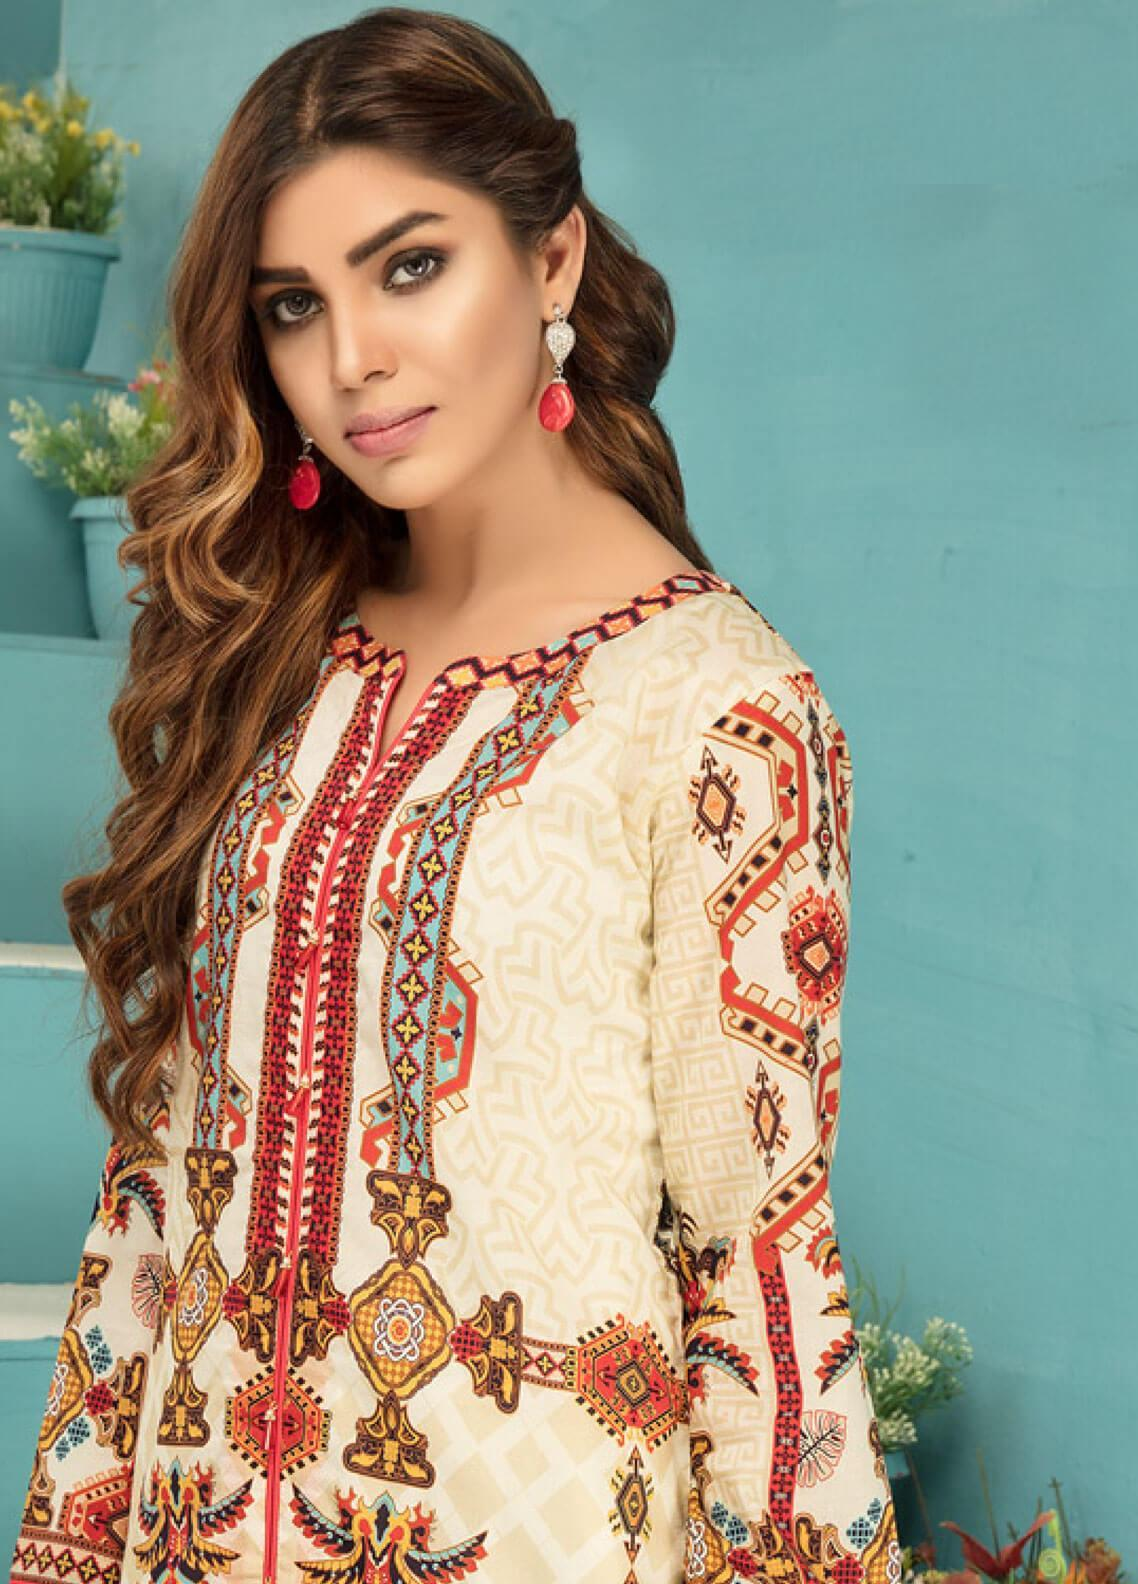 Sanoor by Noor Fatima Printed Lawn Unstitched Kurties SNO19F 870 - Festive Collection